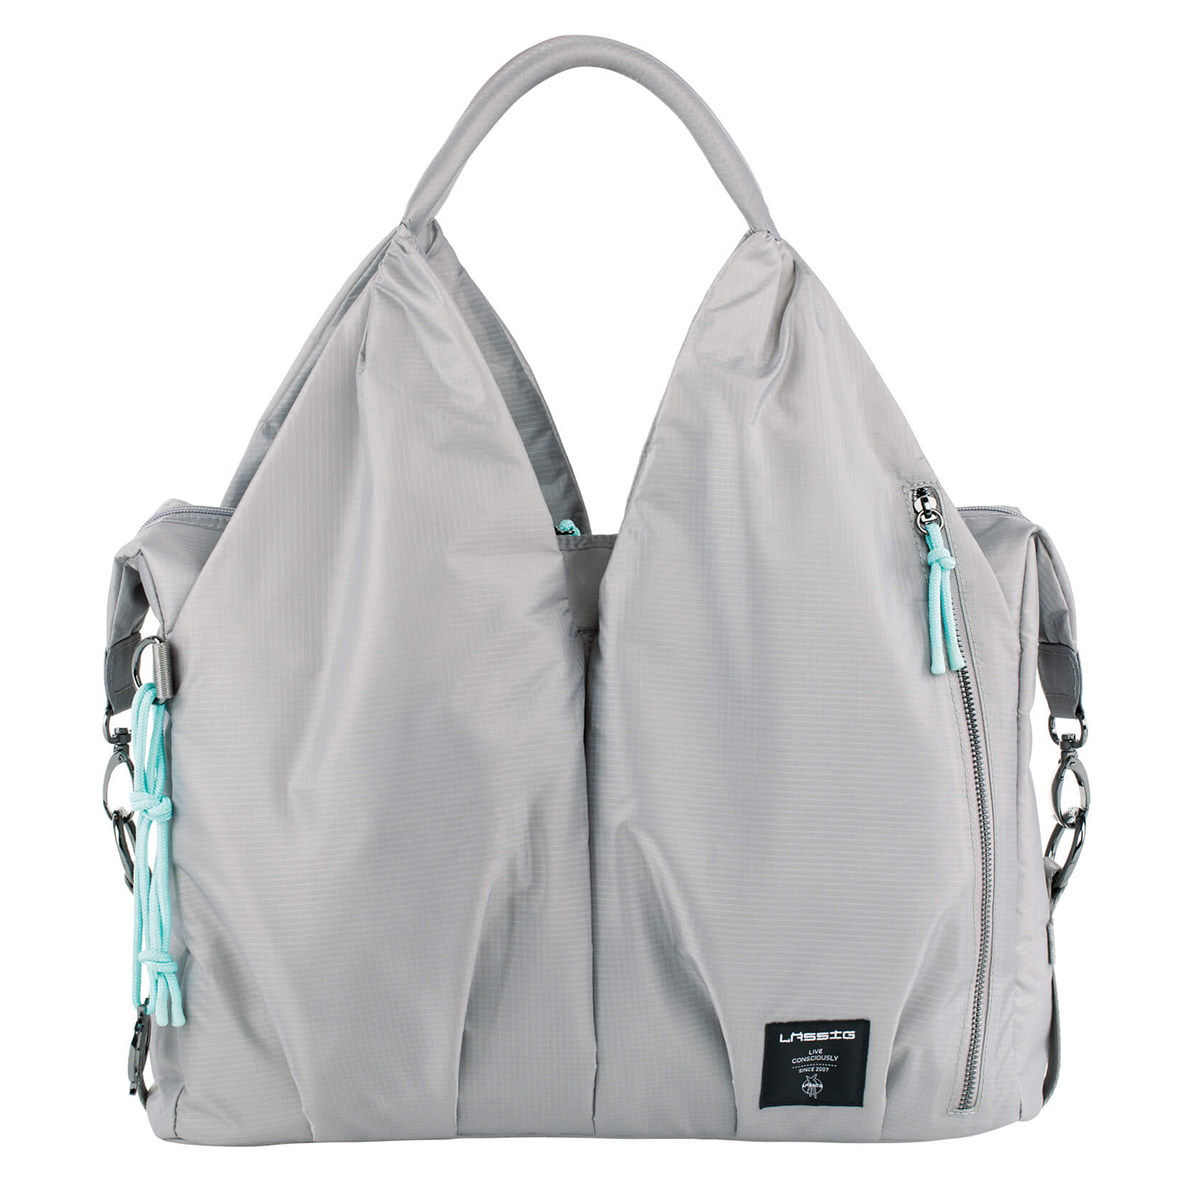 Sac à langer Sac à Langer Neckline Pop Green Label - Gris Sac à Langer Neckline Pop Green Label - Gris